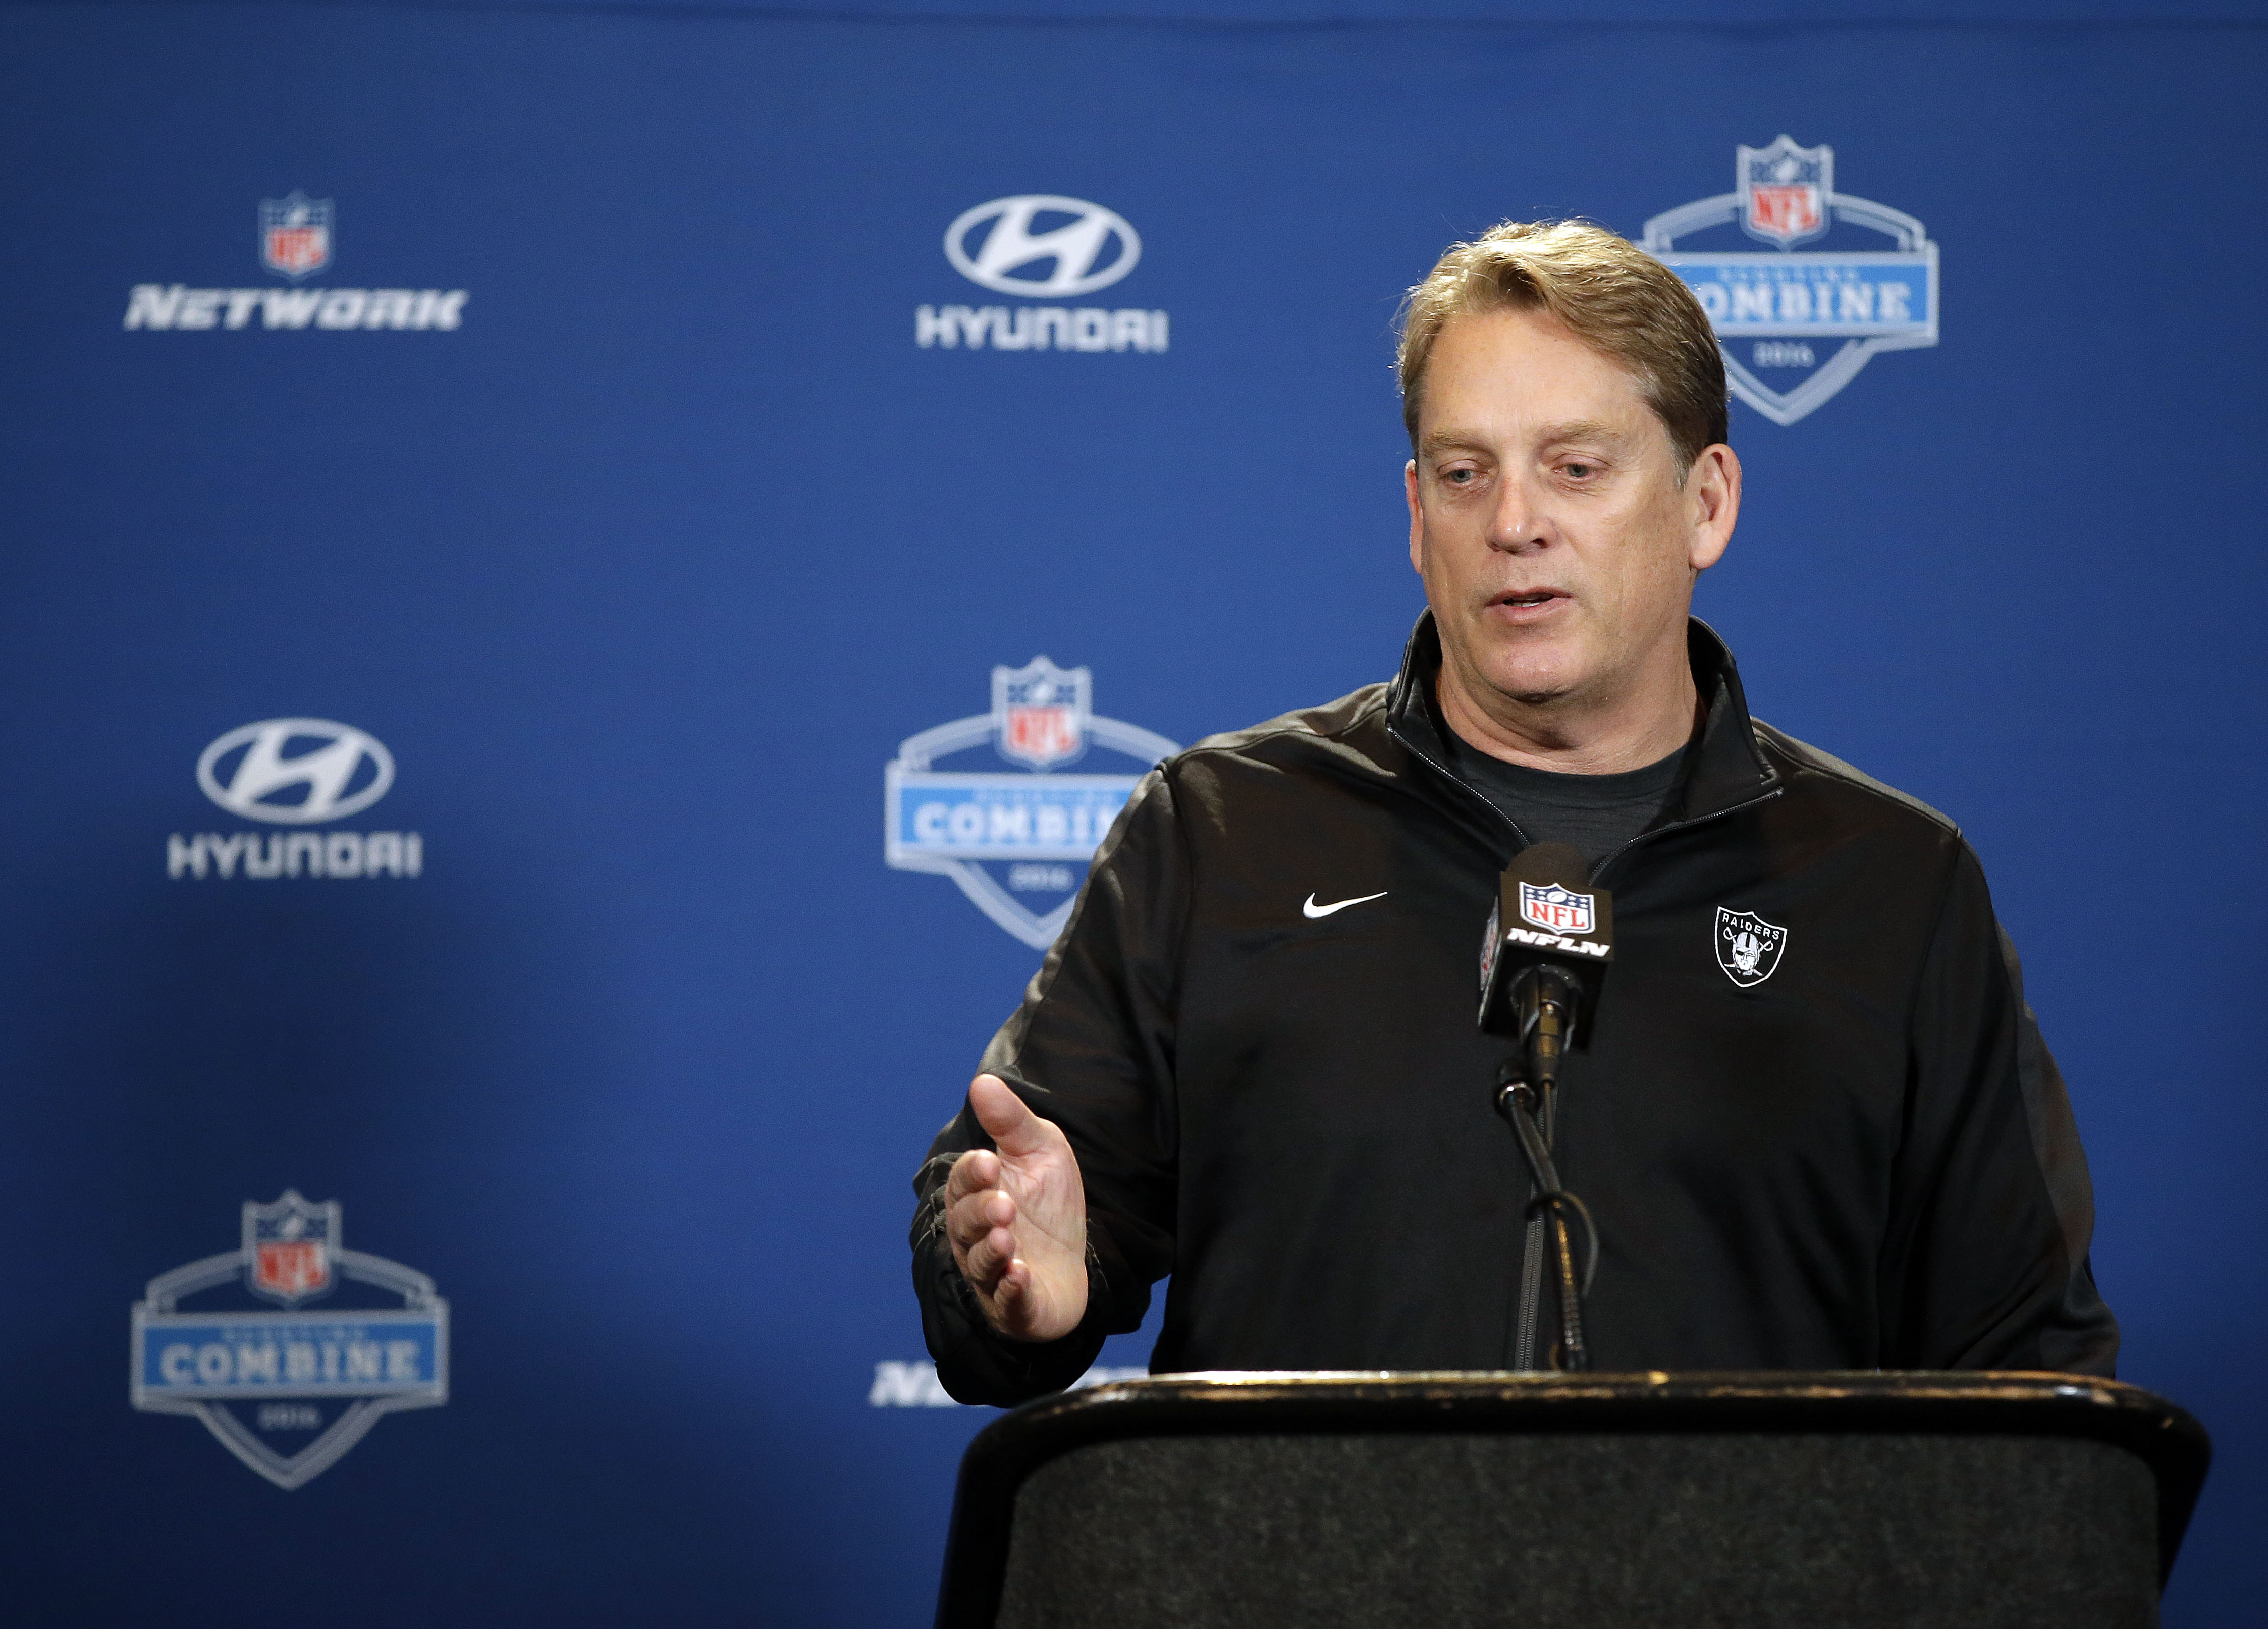 Oakland Raiders head coach Jack Del Rio responds to a question during a news conference at the NFL football scouting combine Wednesday, Feb. 24, 2016, in Indianapolis.  (AP Photo/Darron Cummings)